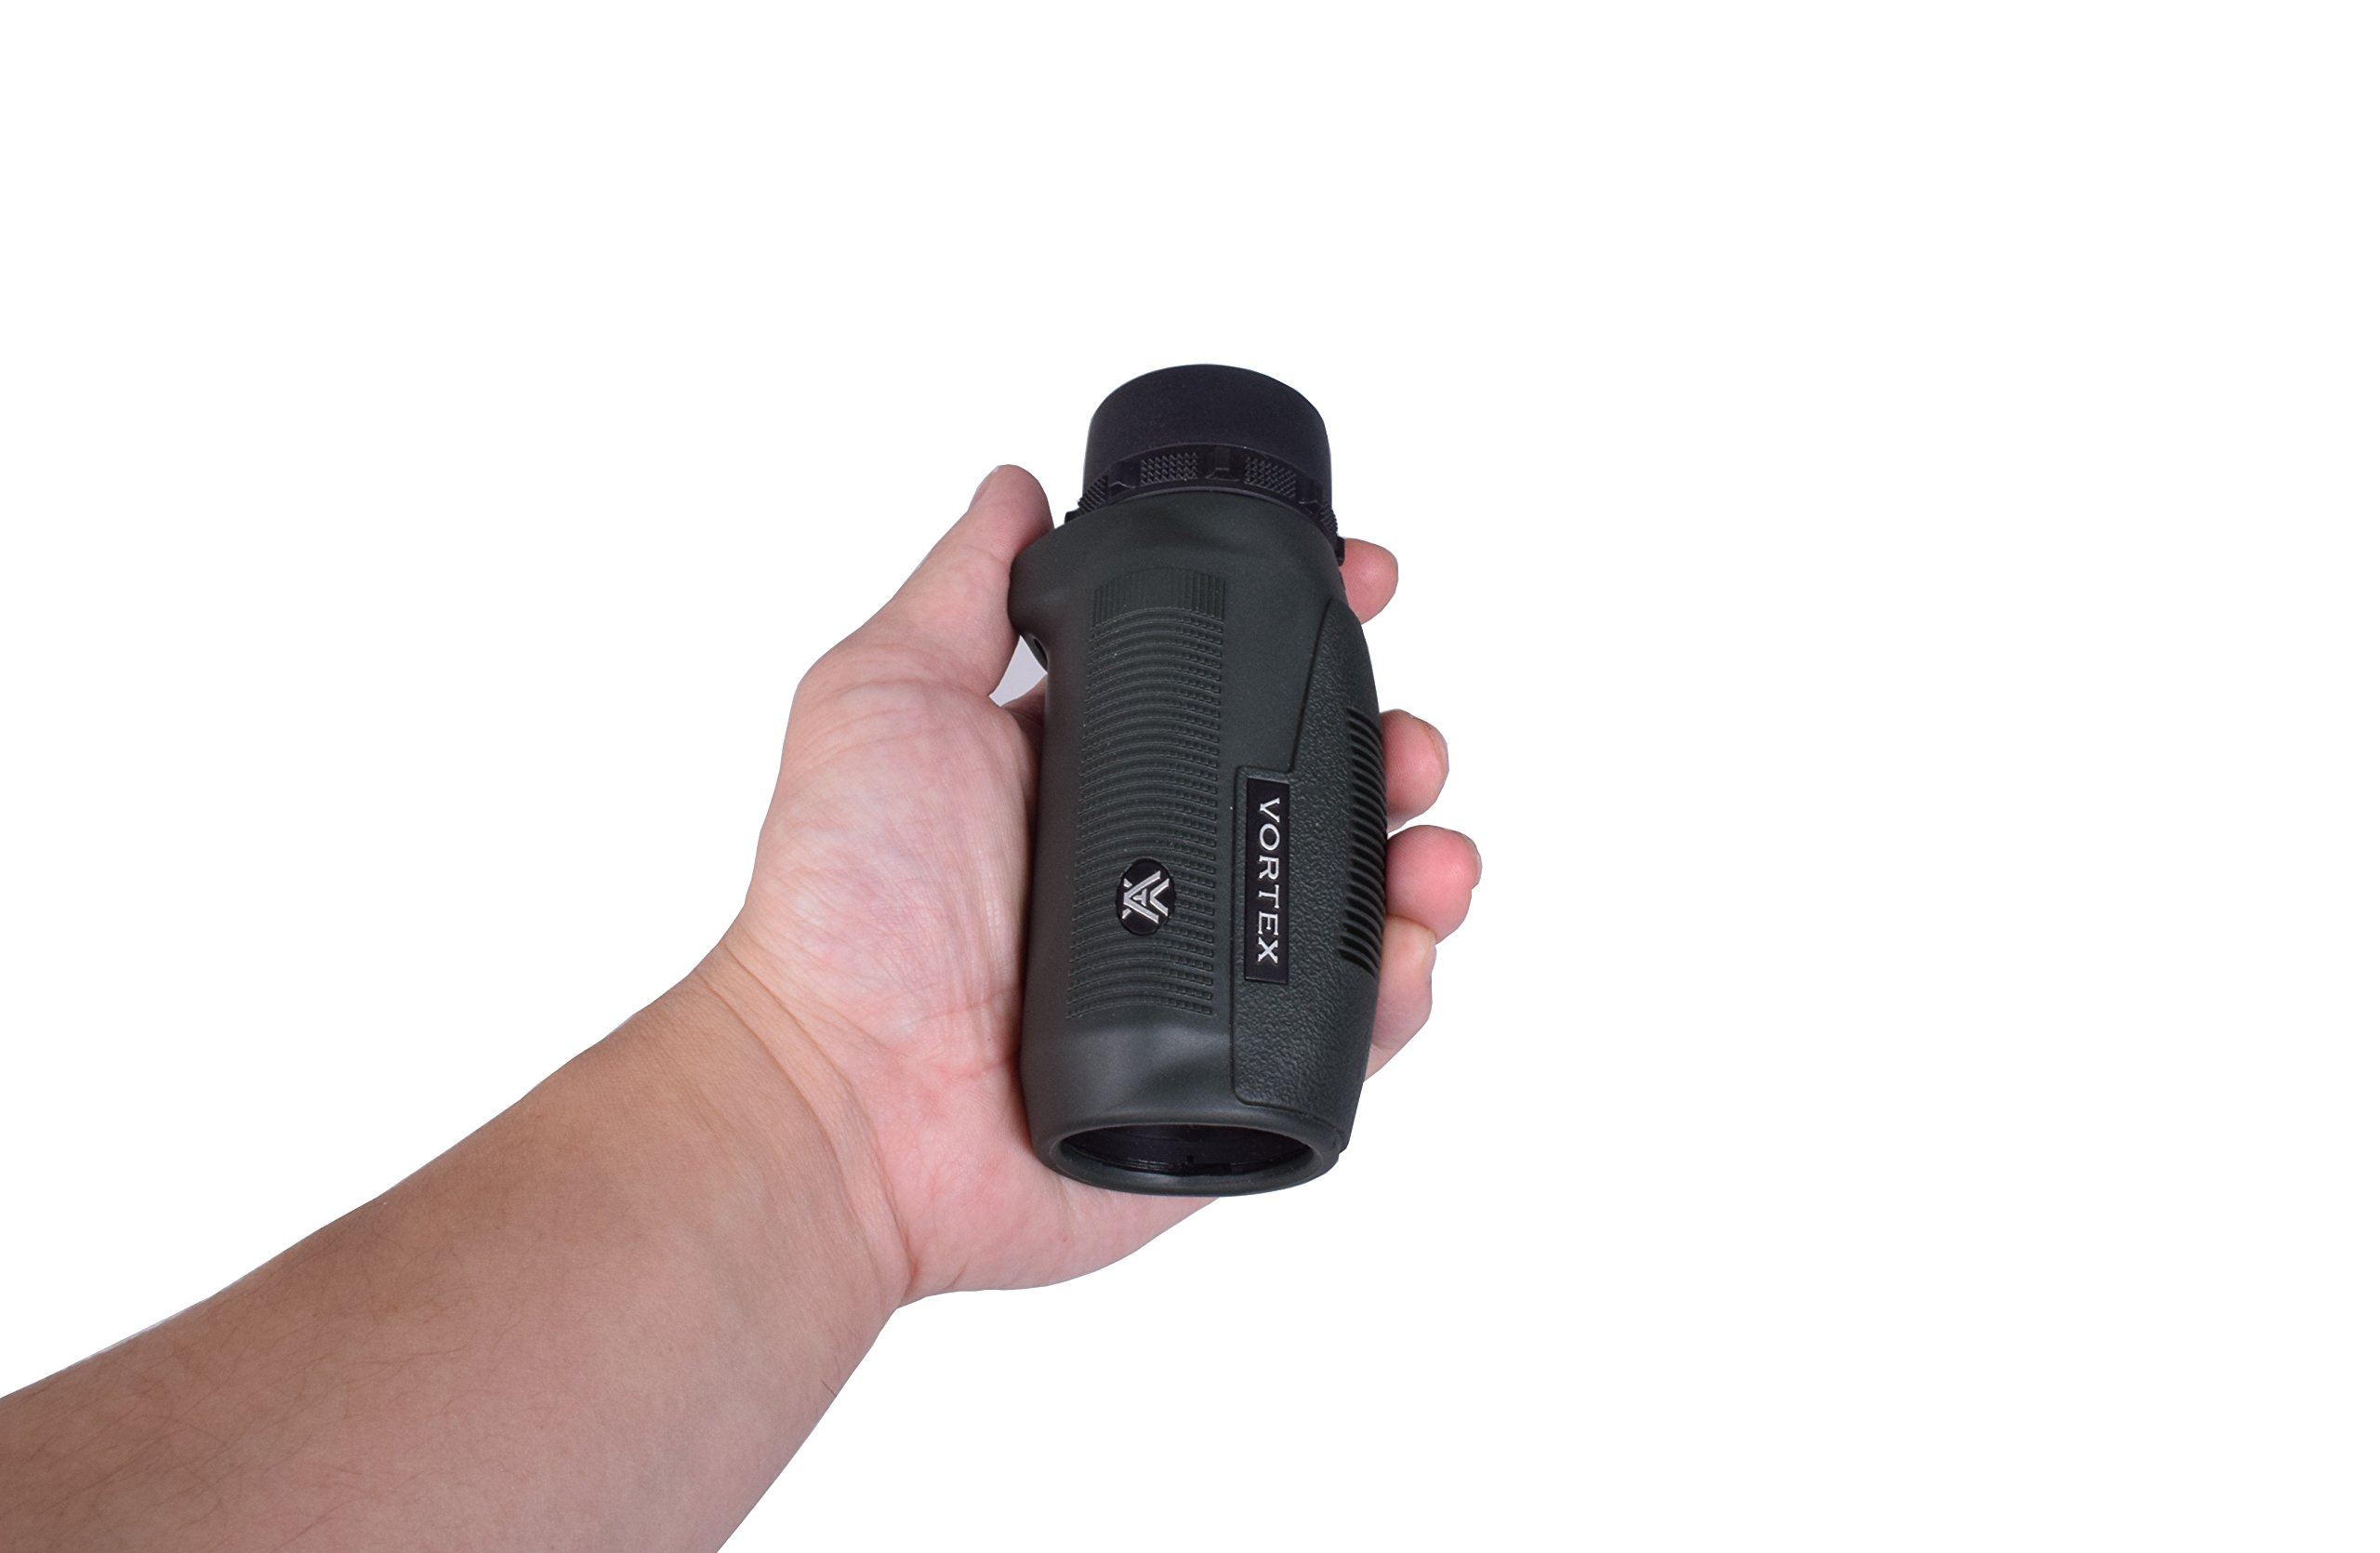 Vortex Solo 10x36 mm Monocular by Vortex Optics (Image #3)